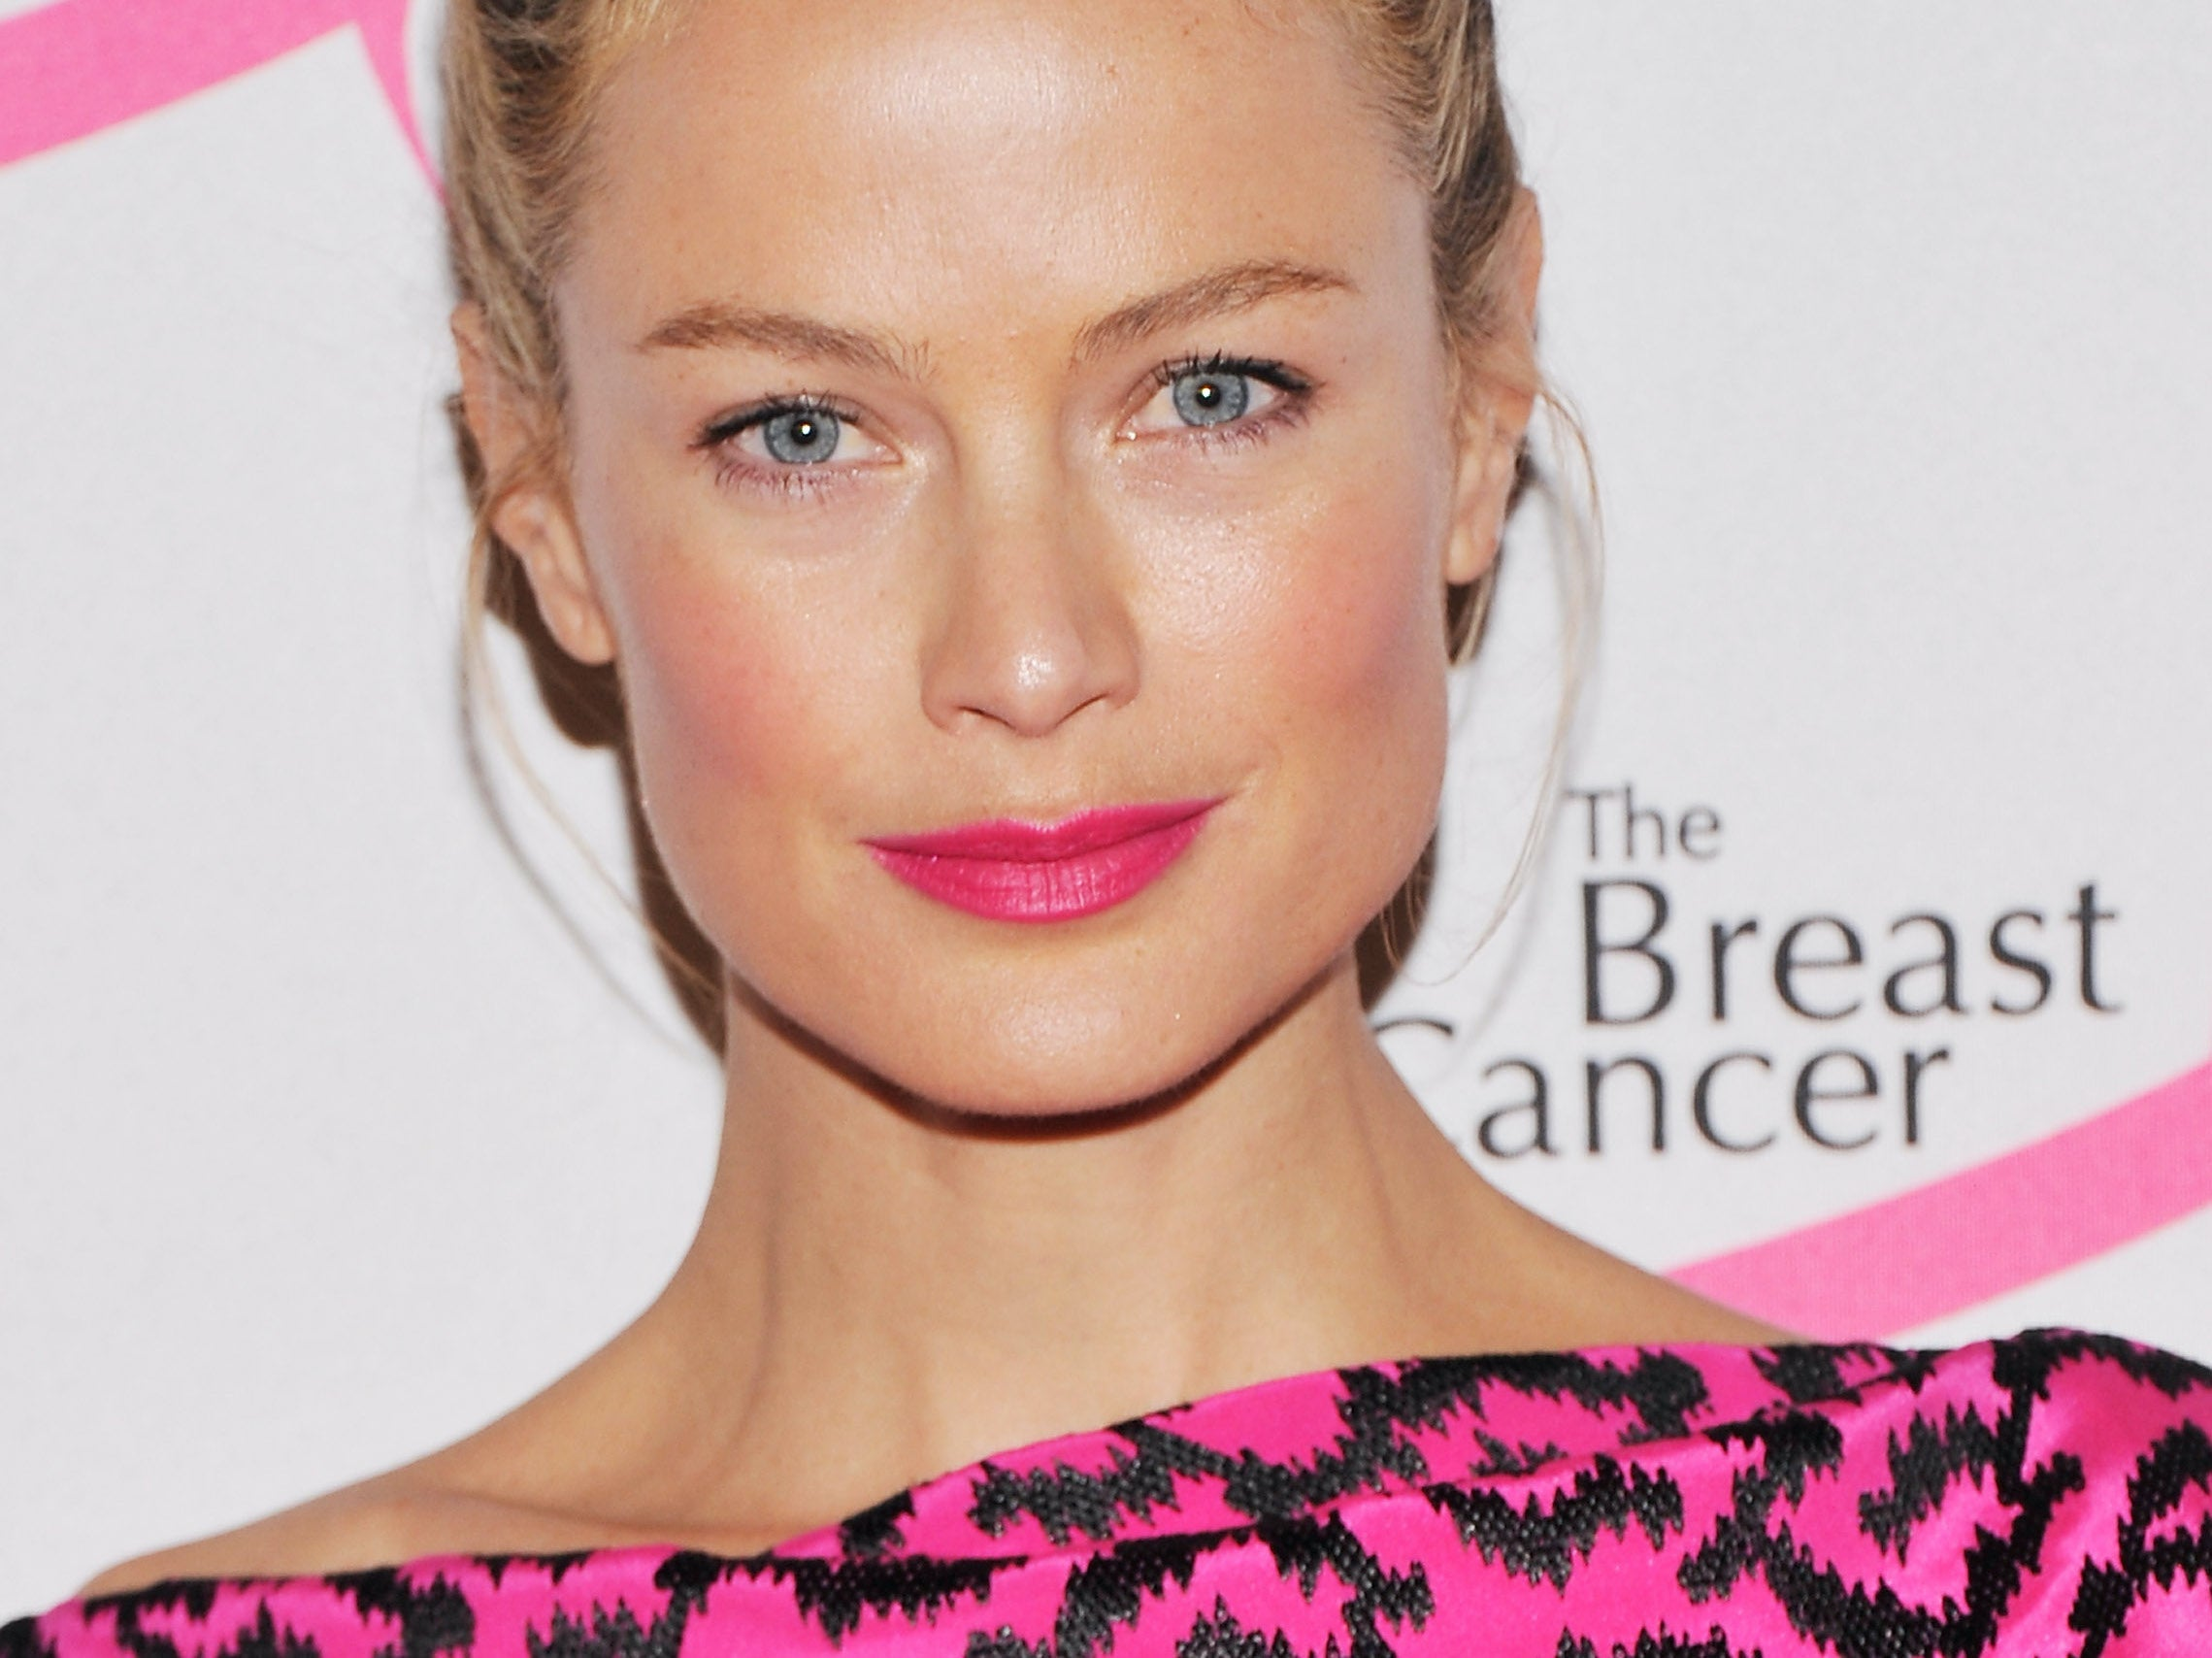 Carolyn Murphy na Hot Pink Party ve Waldorf-Astoria v New Yorku, duben 2012             Autor: Stephen Lovekin/Getty Images